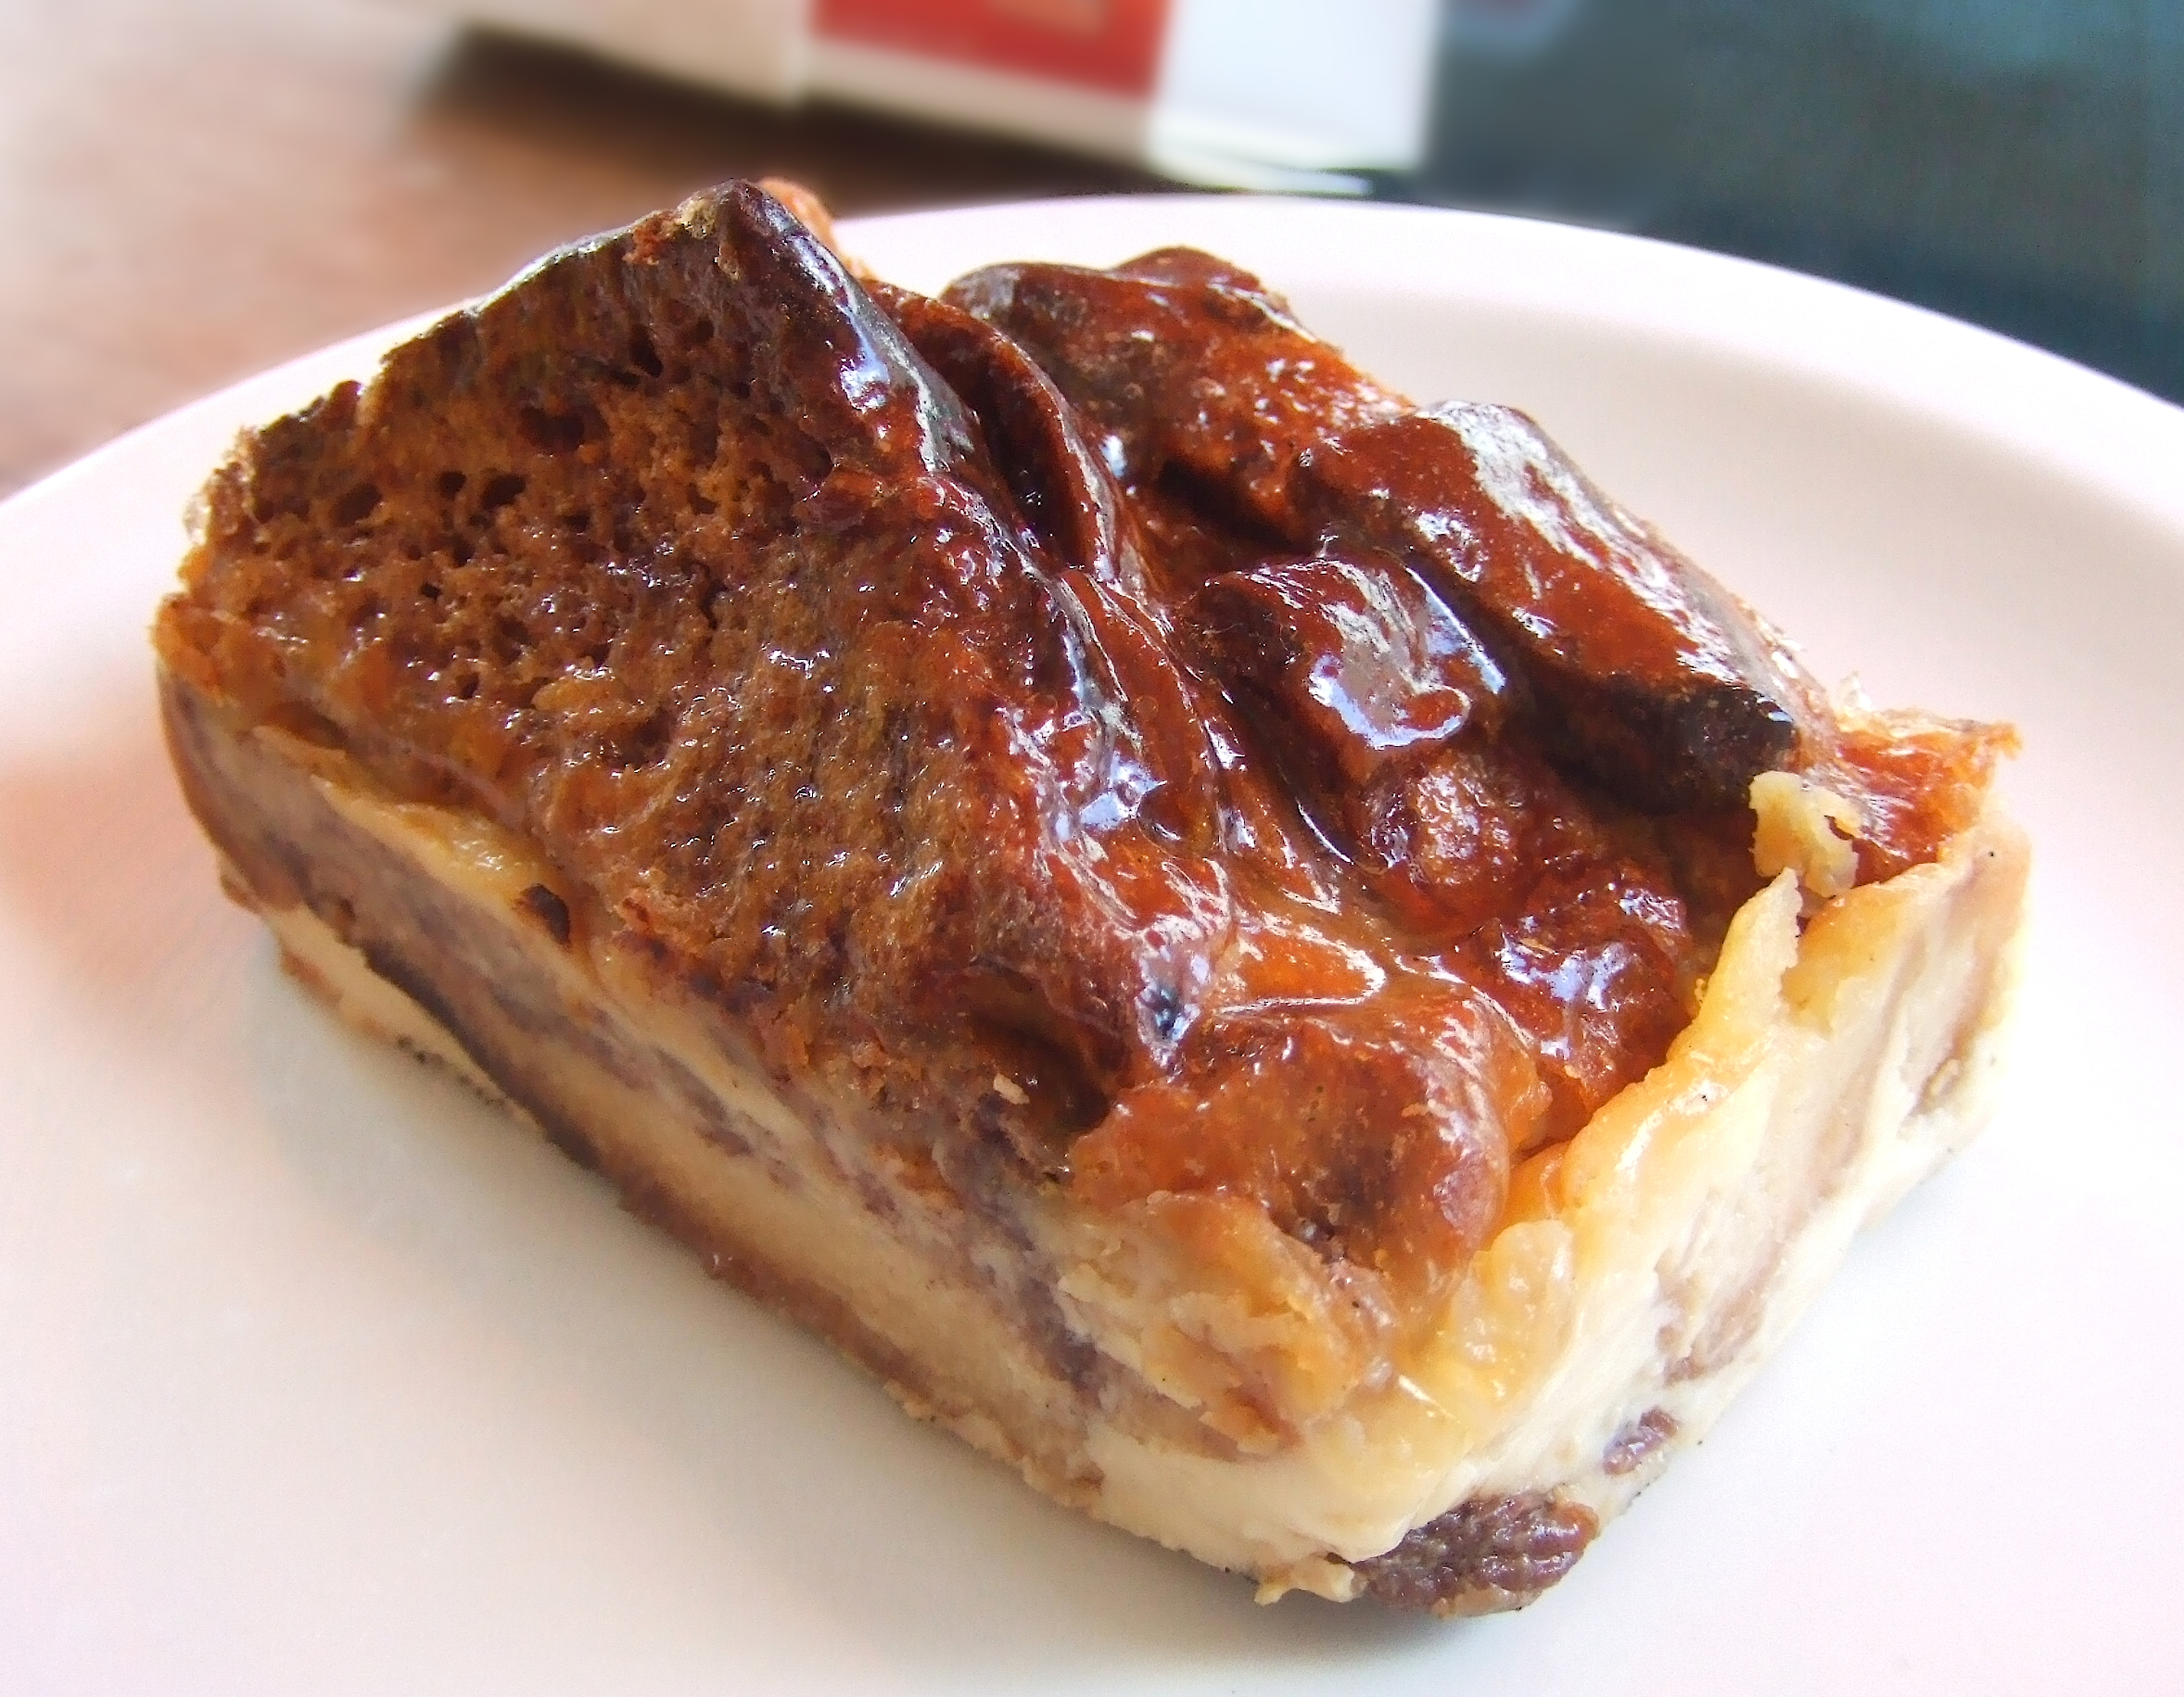 File:Bread and butter pudding-01.jpg - Wikimedia Commons